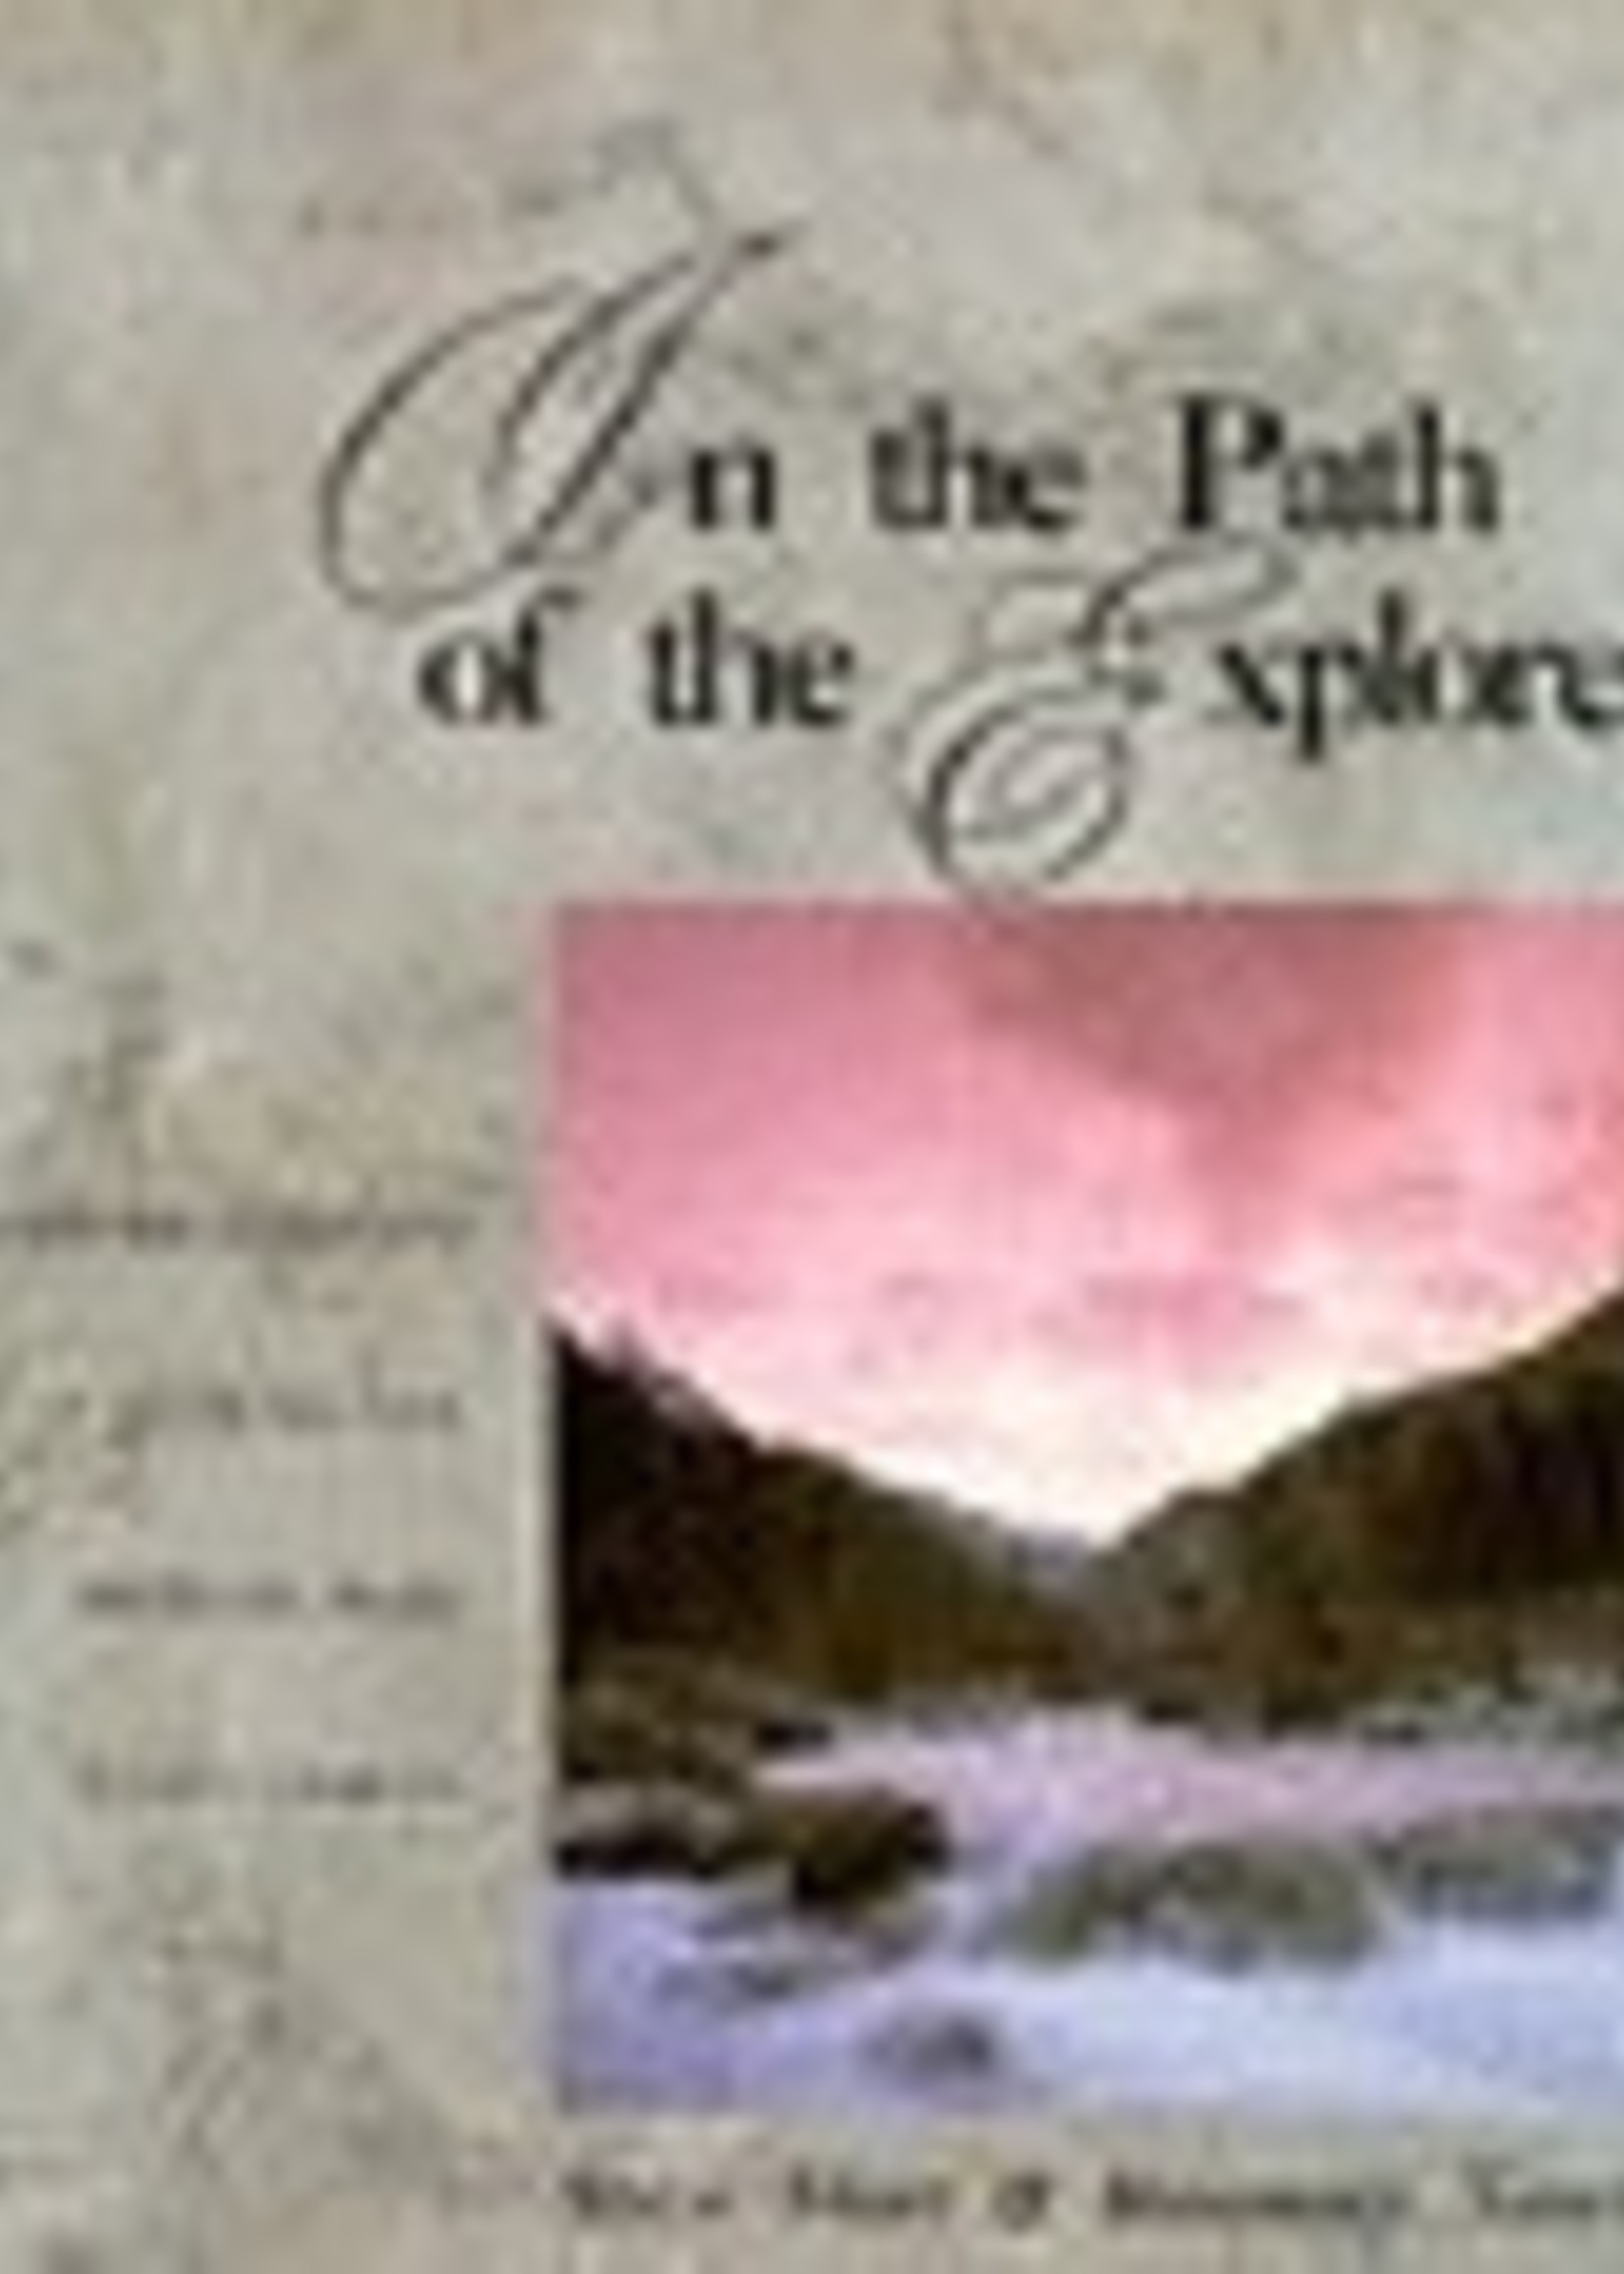 USED - In the Path of the Explorers by Steve Short, Rosemary Neering